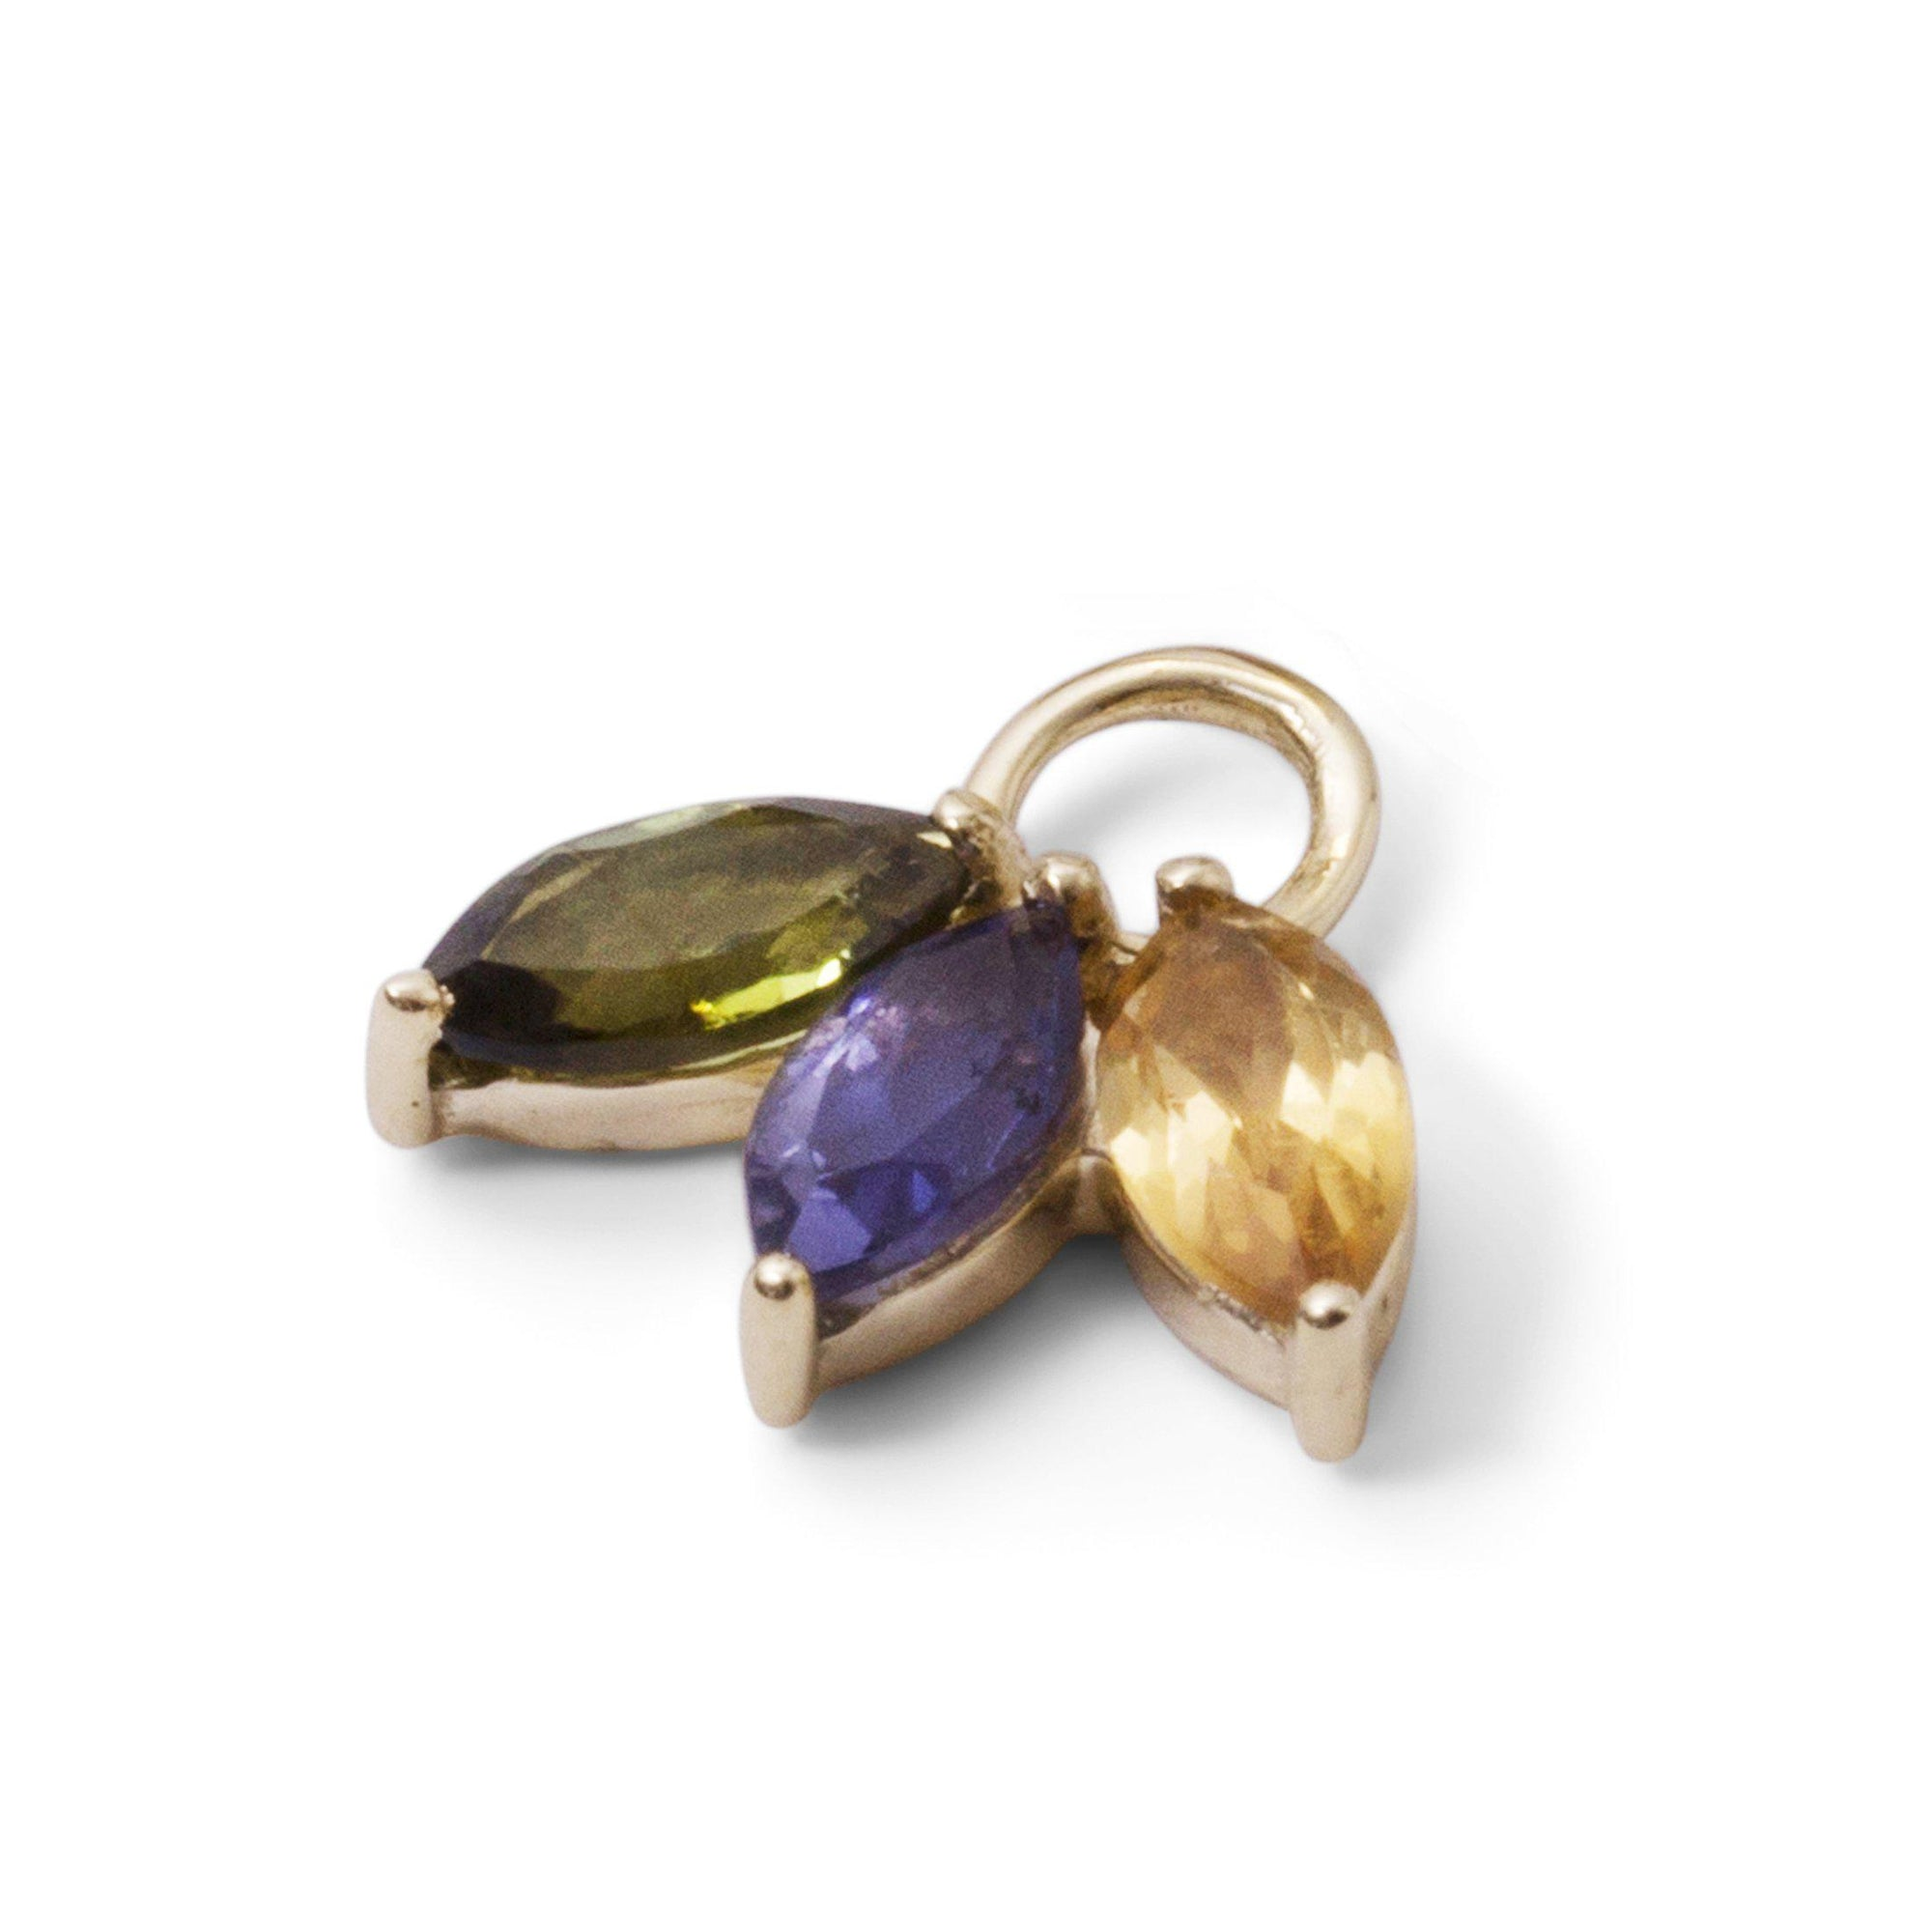 The Tri Mixed Marquise Charm in 9kt Gold